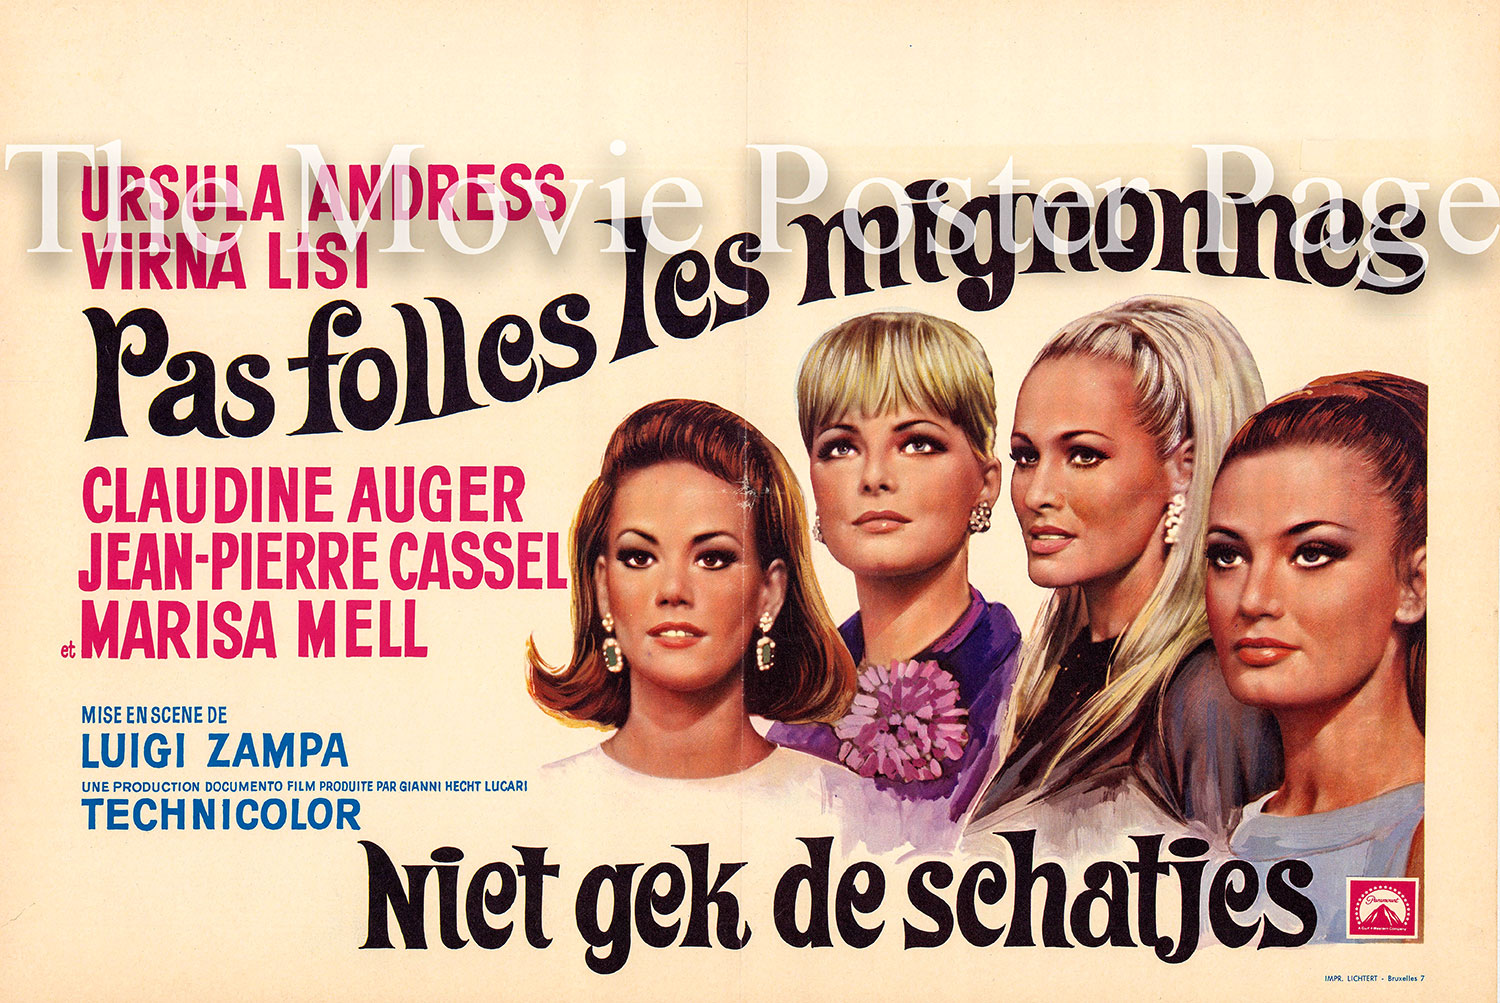 Pictured is a Belgian poster for the 1967 Luigi Zampa film Anyone Can Play starring Ursula Andress.